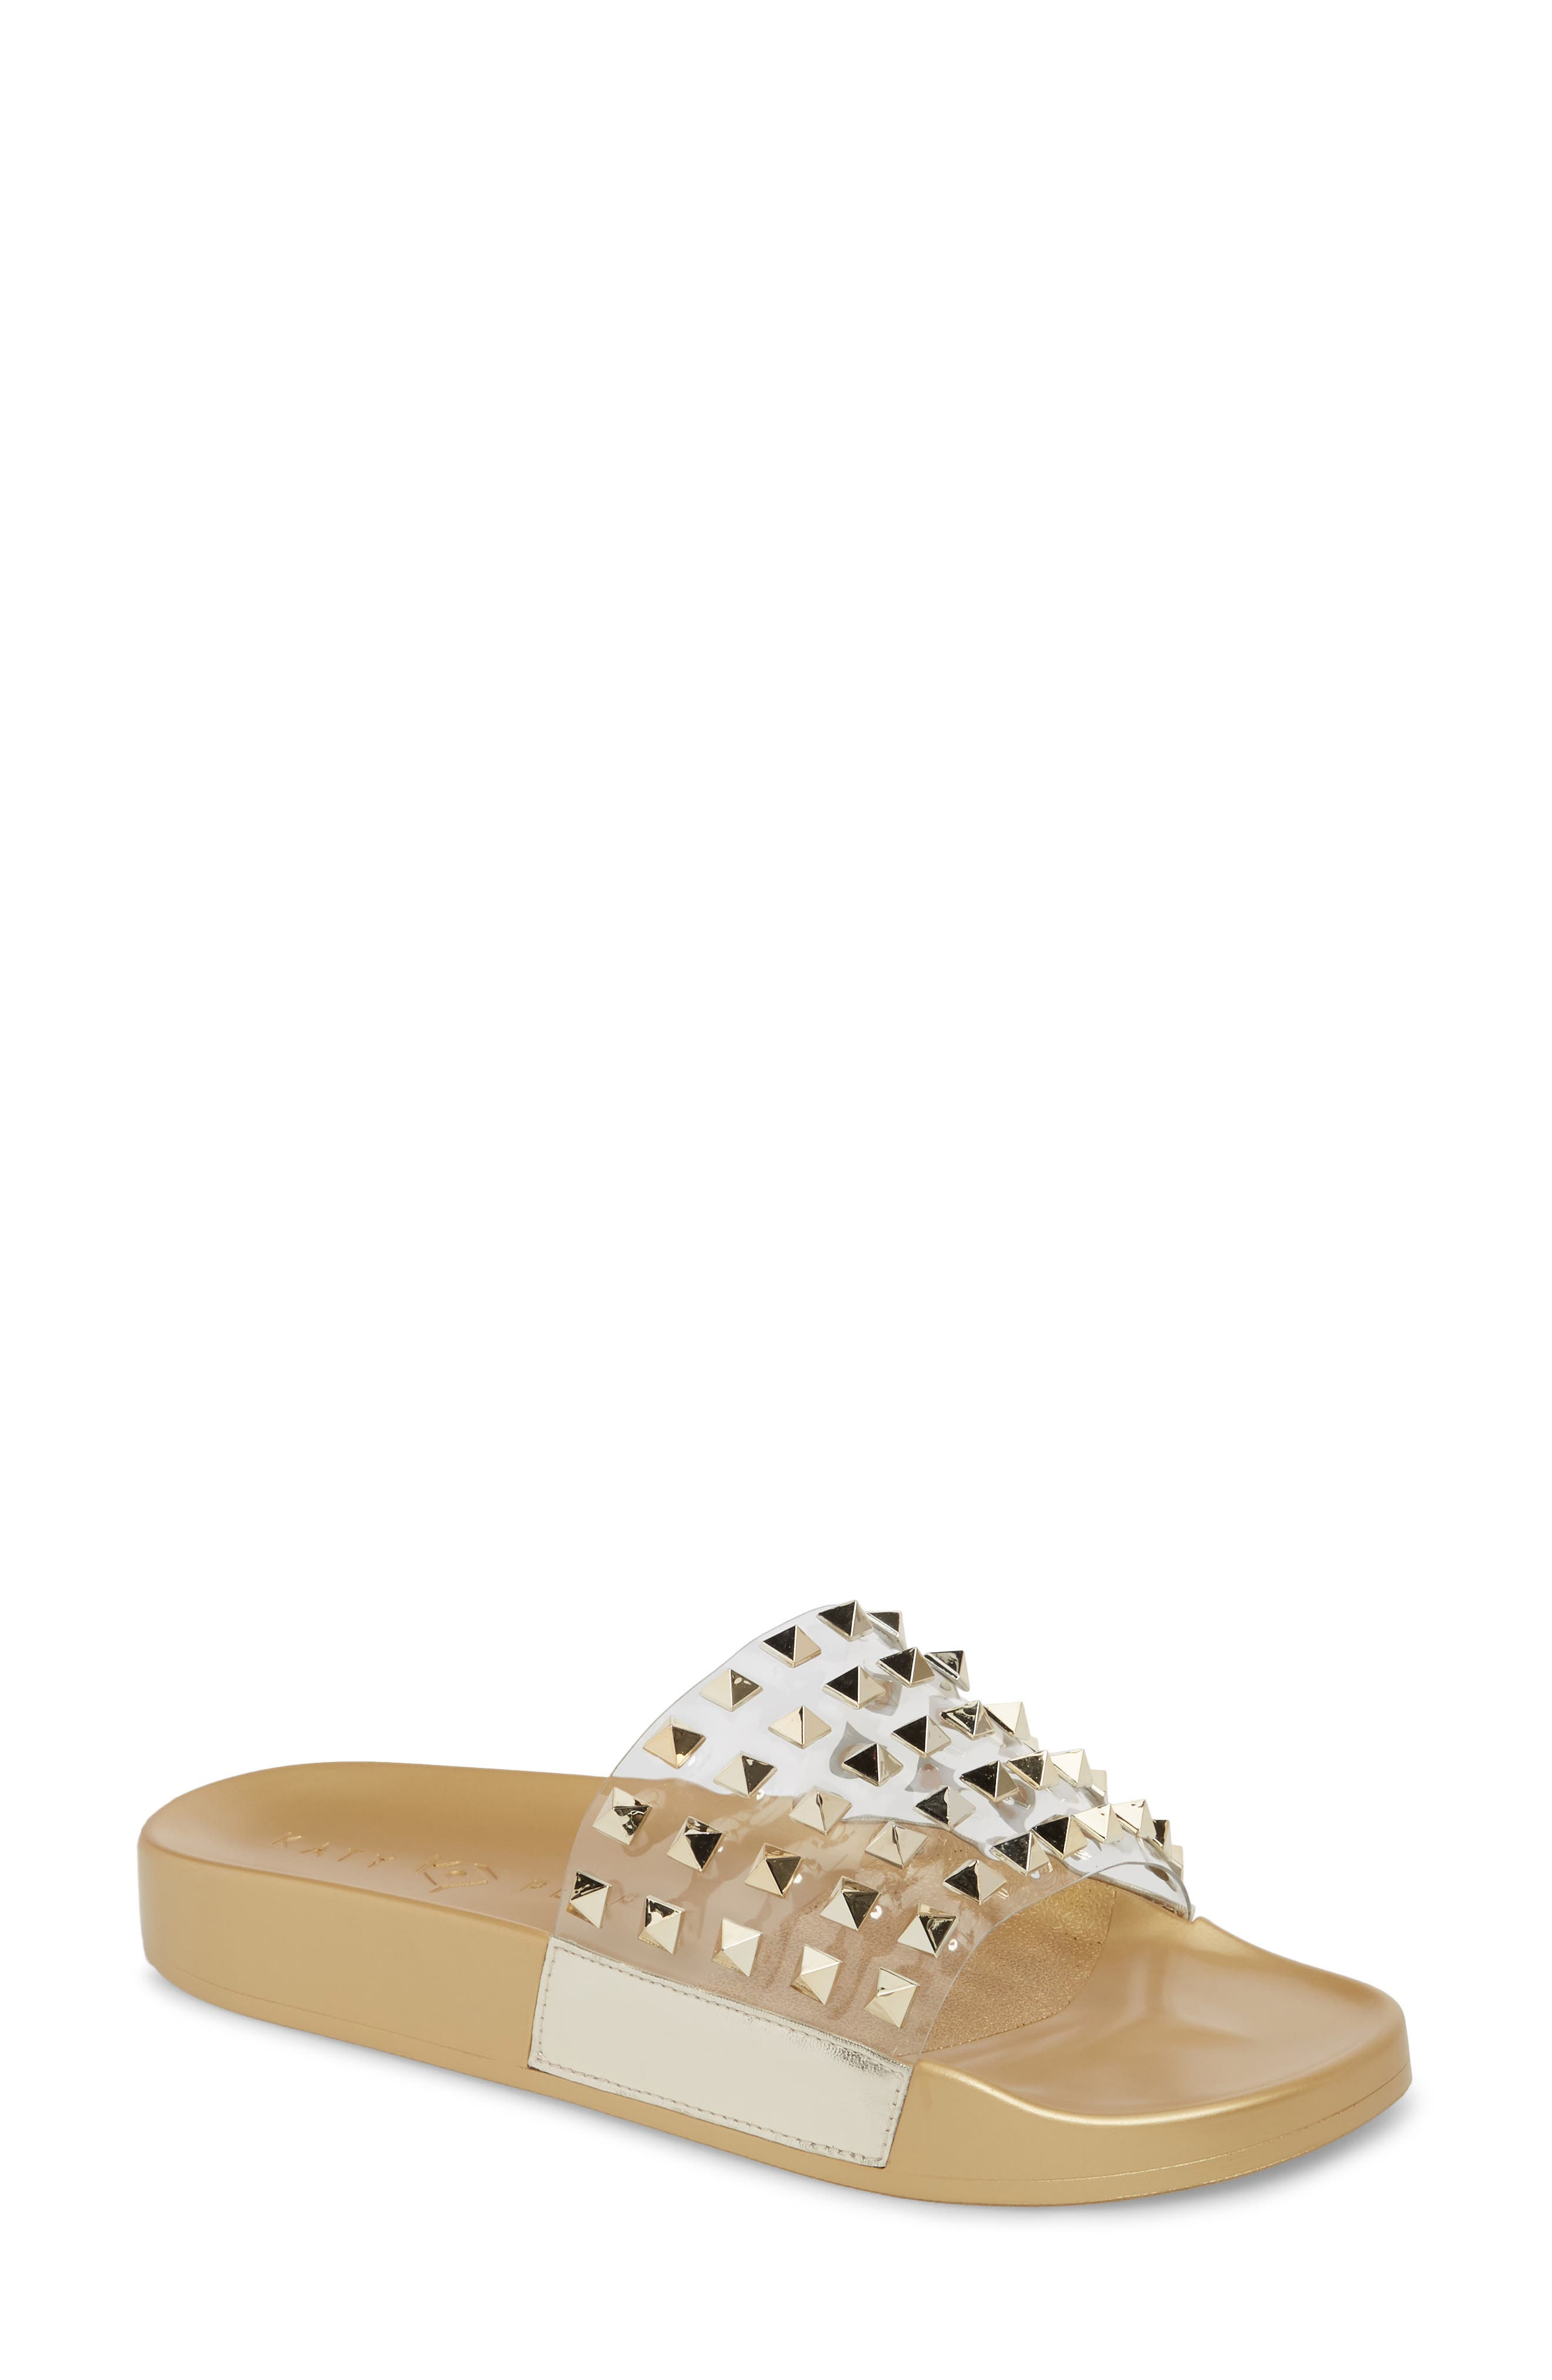 Katy Perry Studded Slide Sandal (Women)